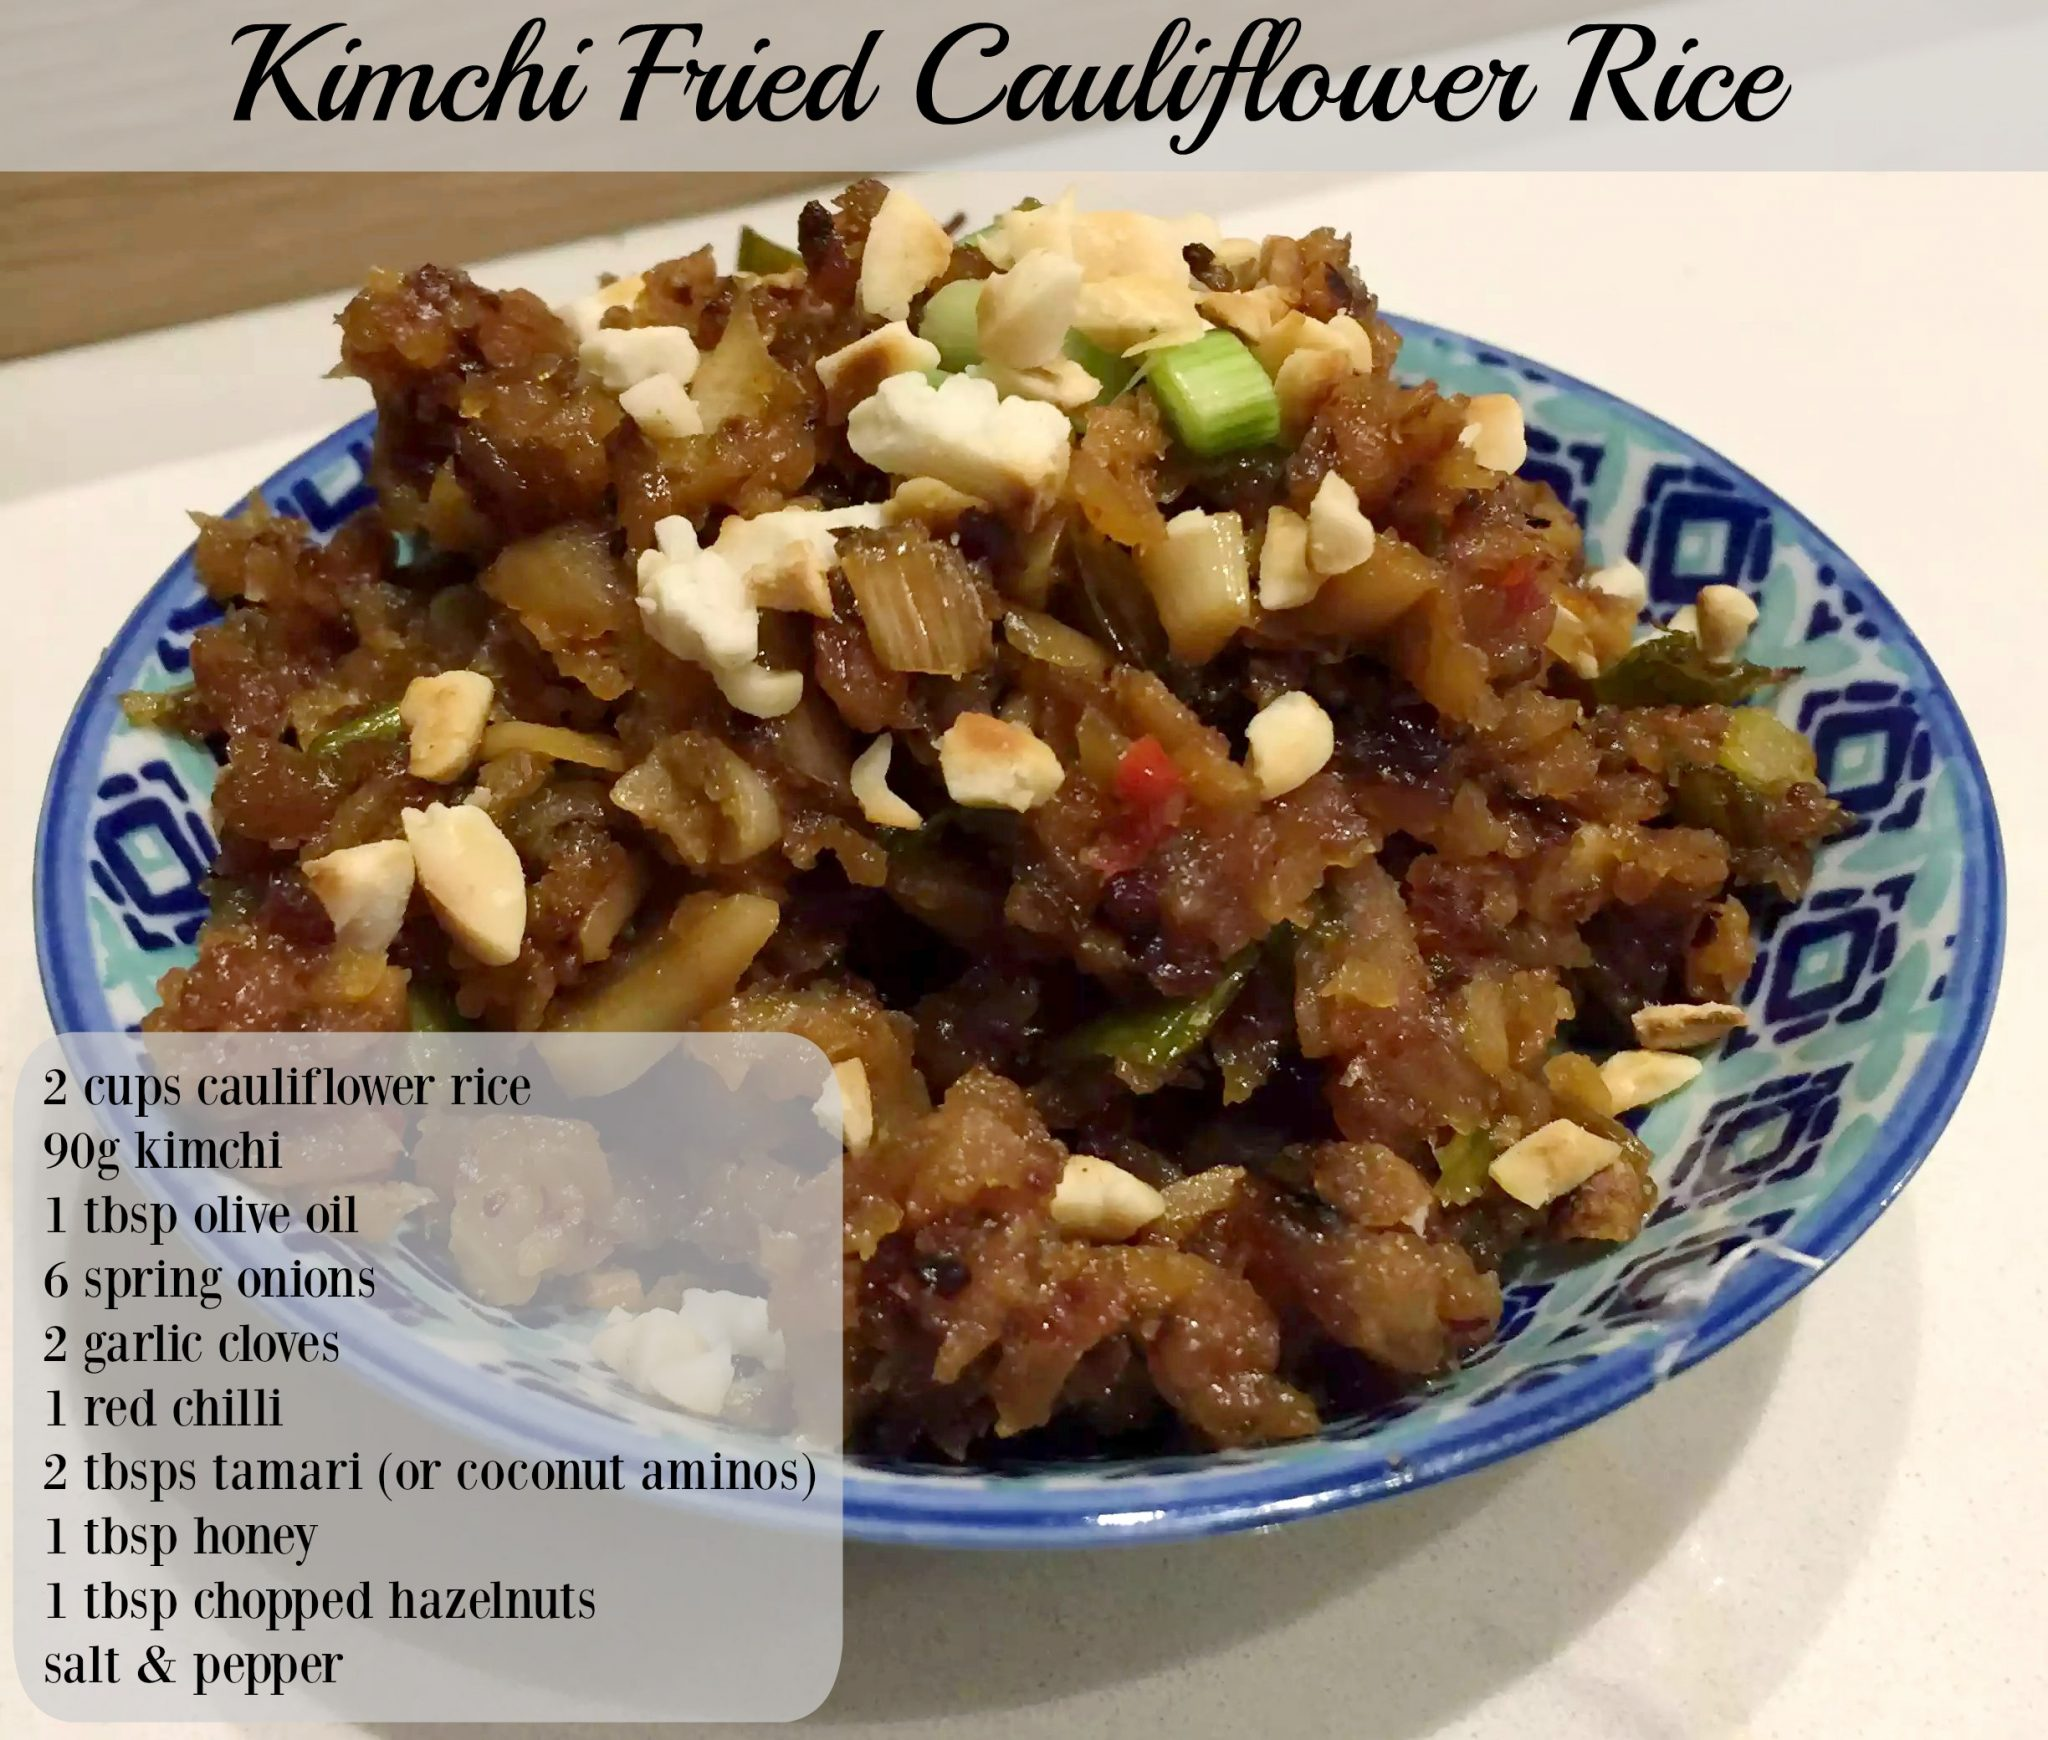 Kimchi Fried Cauliflower Rice by Emma Eats & Explores - Paleo, Gluten-Free, Grain-Free, Refined Sugar-Free, Vegan, Vegetarian, Dairy-Free